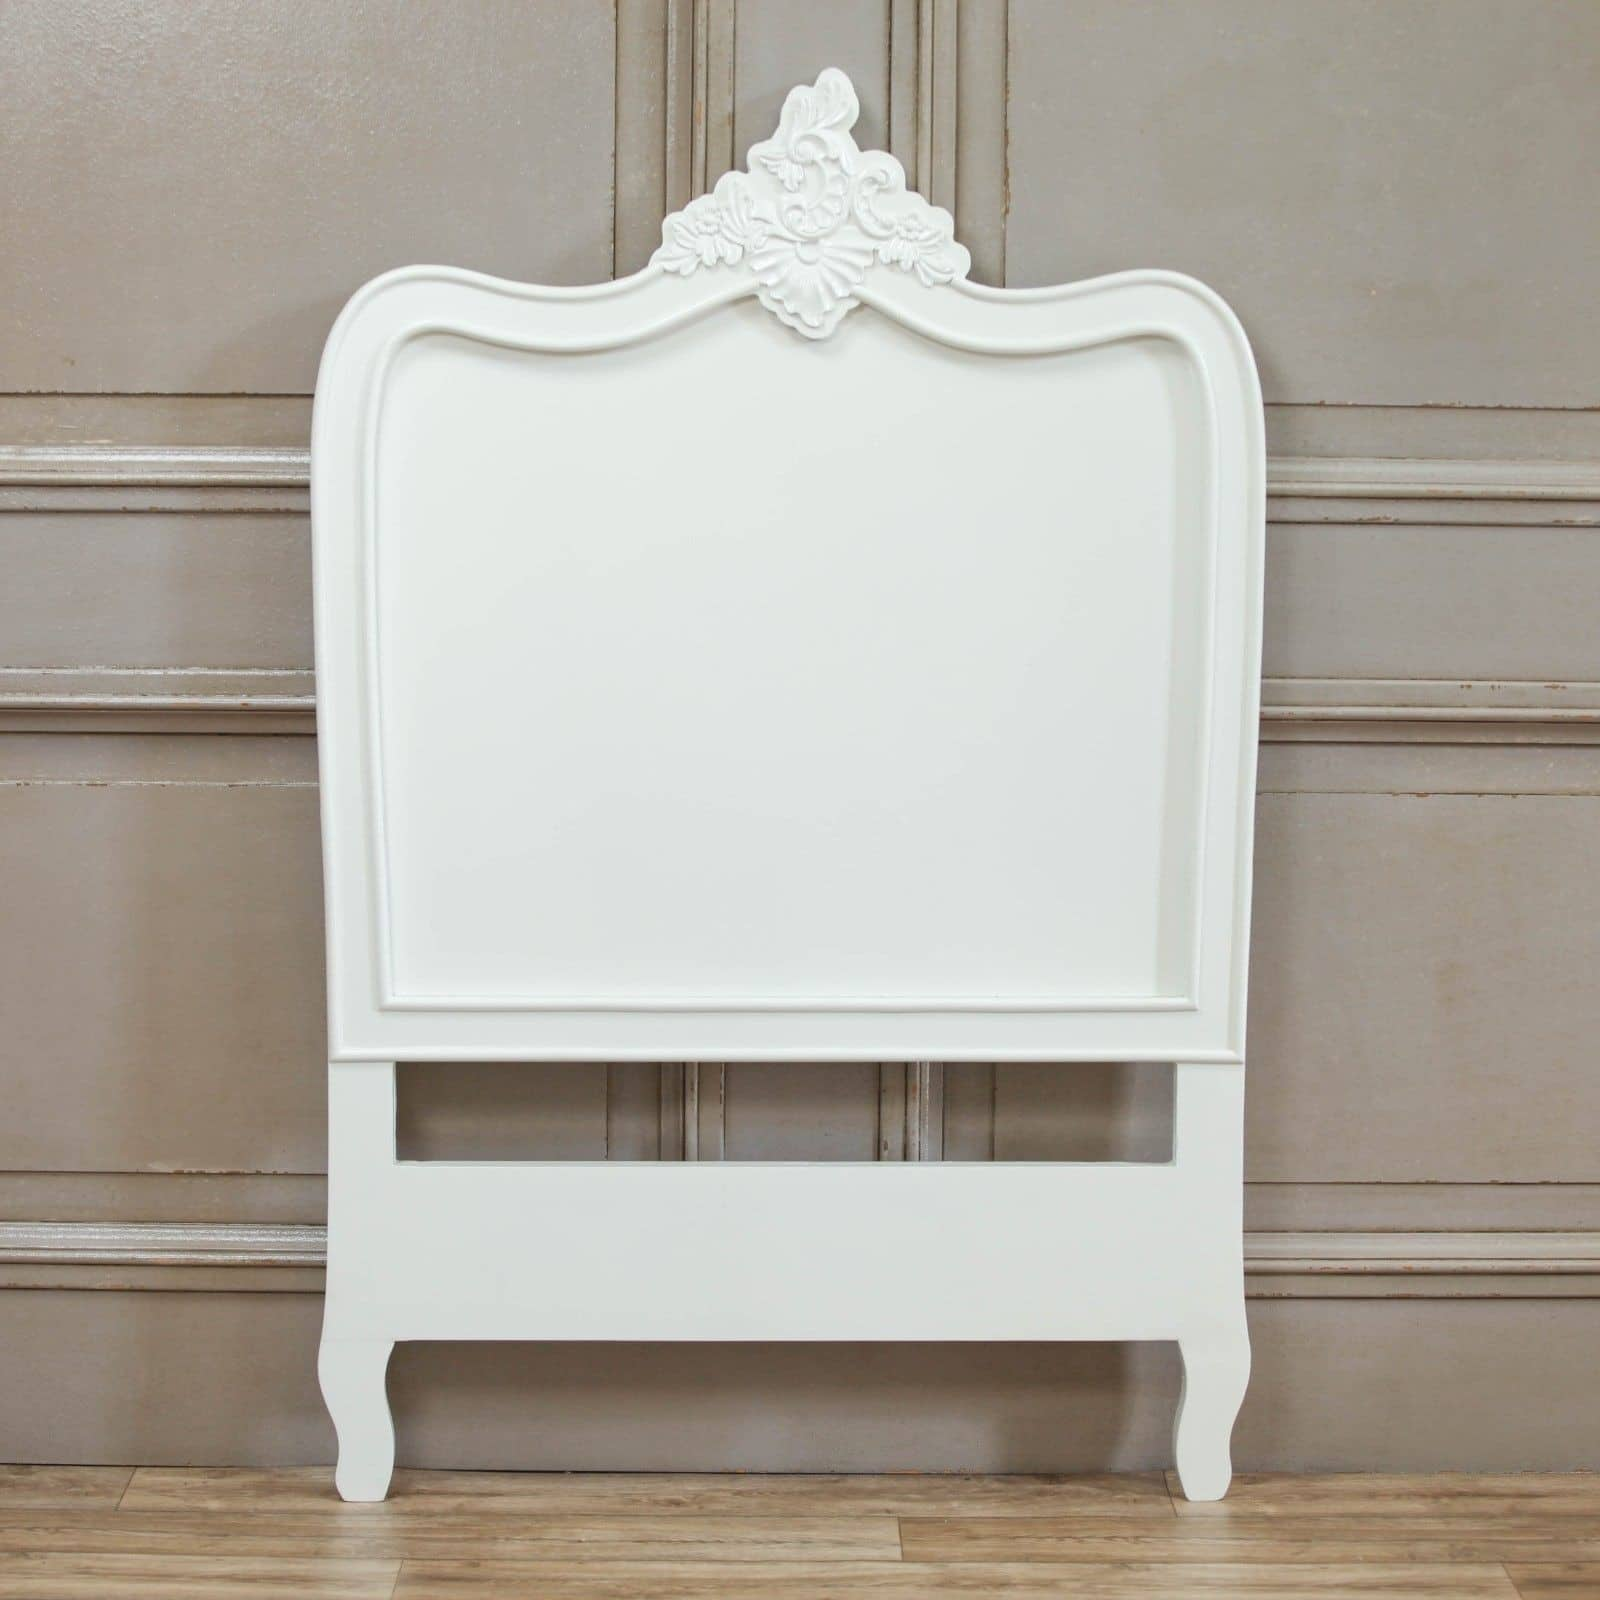 French White 3ft Single Headboard Furniture La Maison